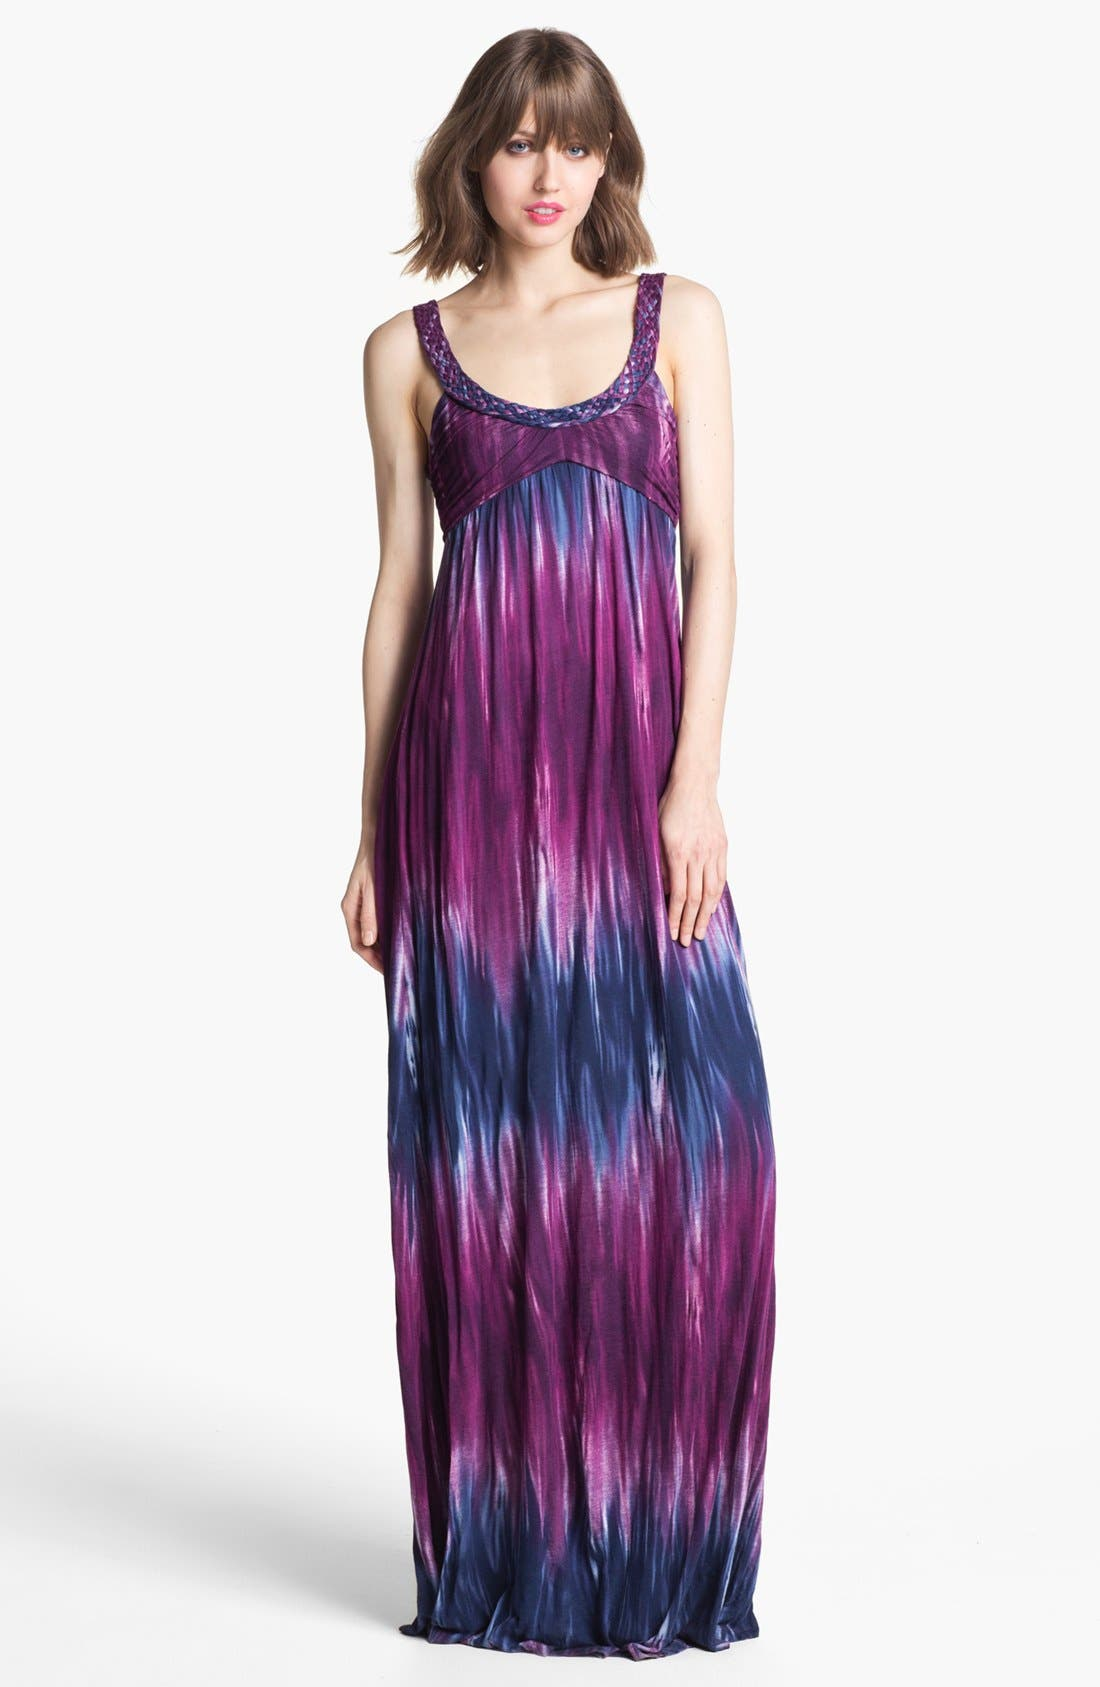 Alternate Image 1 Selected - Felicity & Coco Tie Dye Maxi Dress (Nordstrom Exclusive)